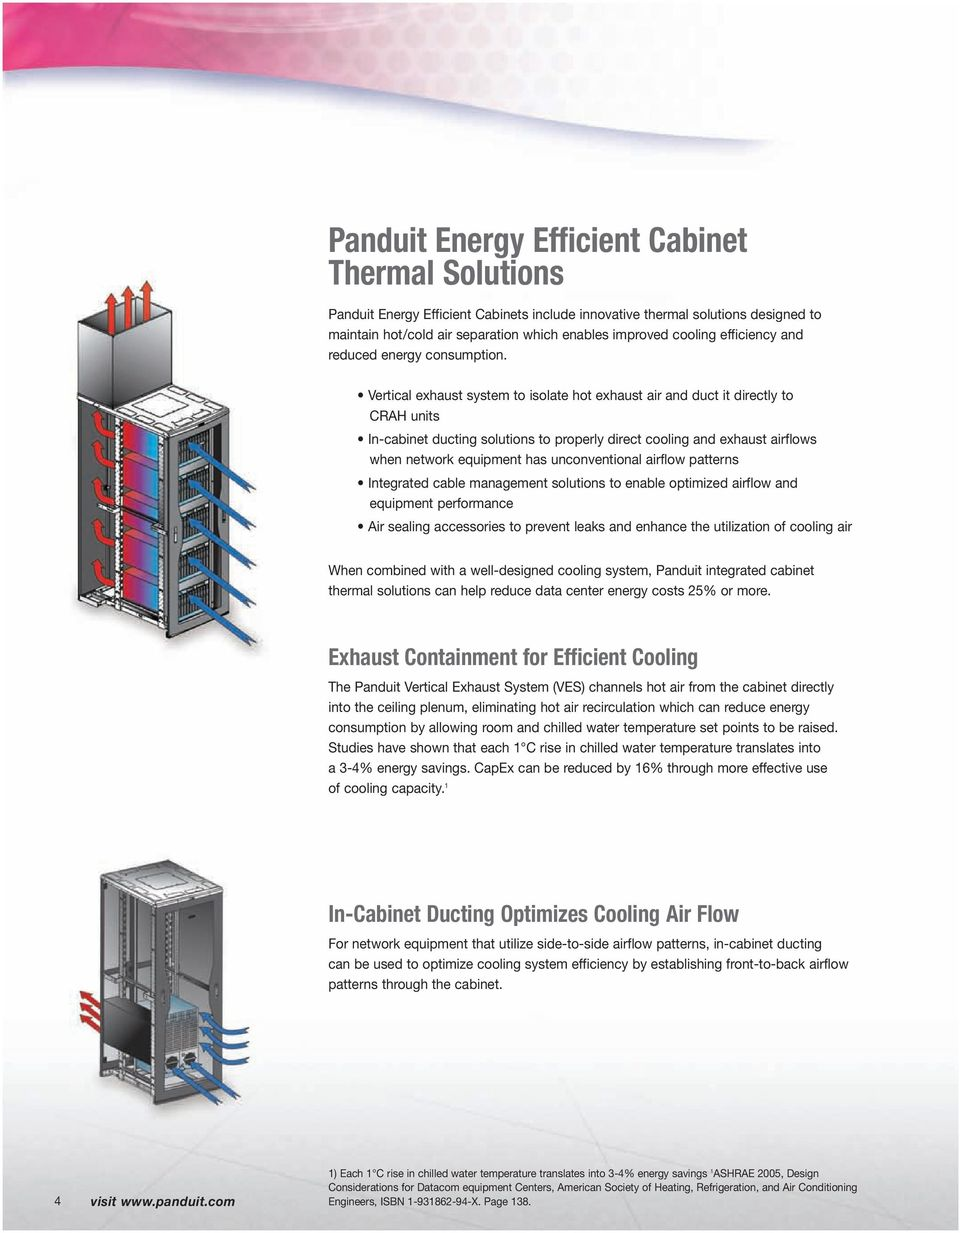 Vertical exhaust system to isolate hot exhaust air and duct it directly to CRAH units In-cabinet ducting solutions to properly direct cooling and exhaust airflows when network equipment has